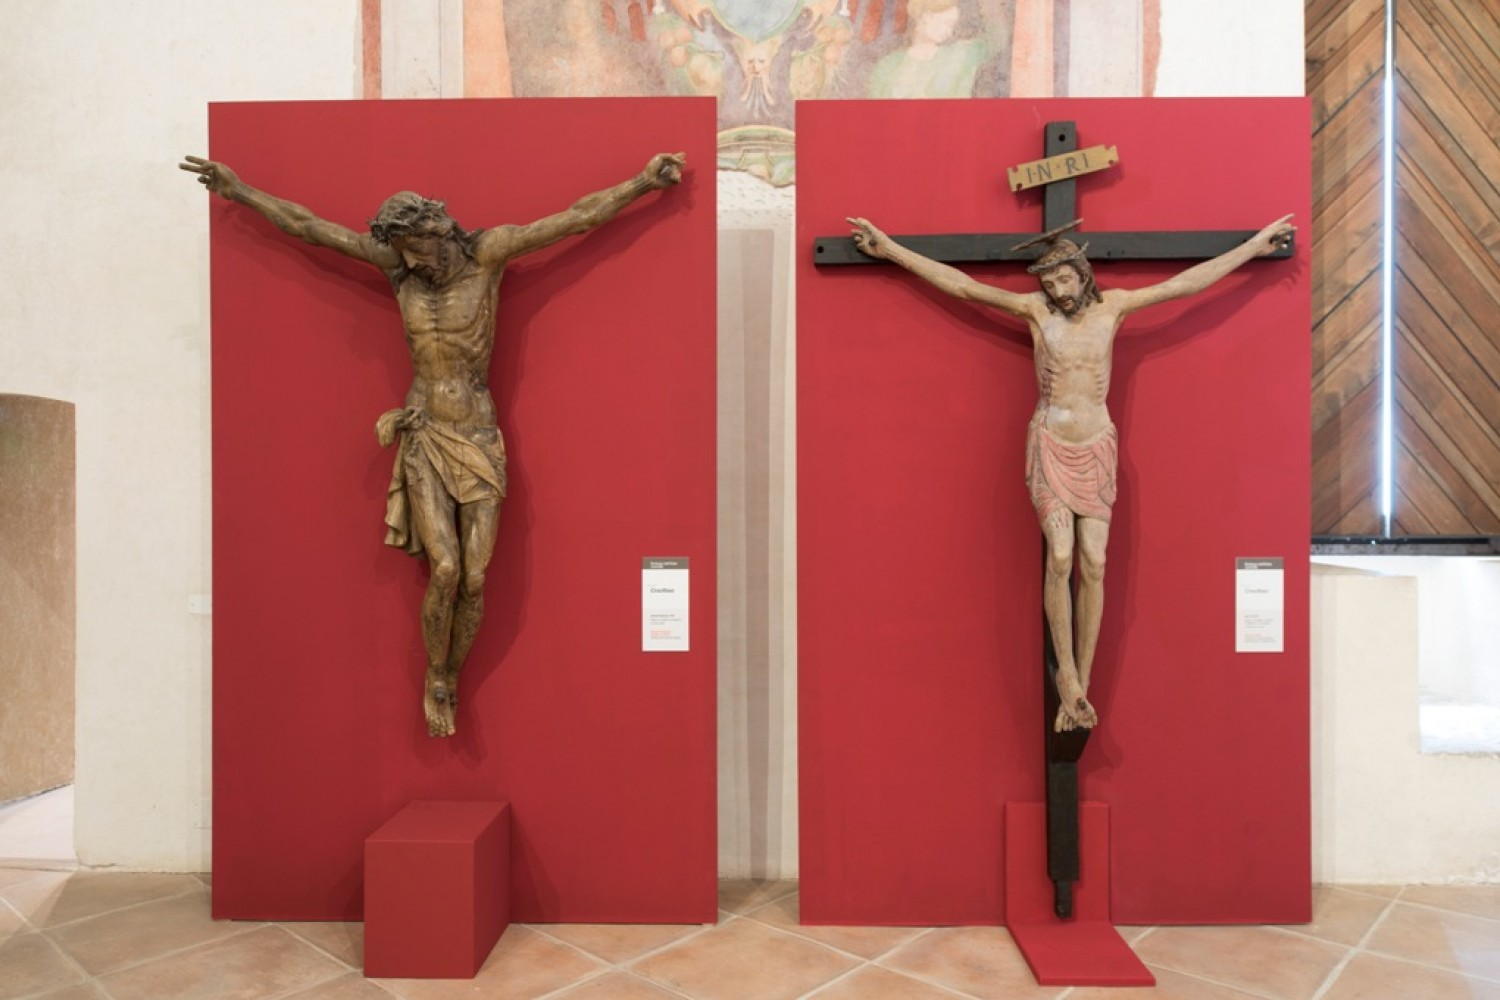 I due crocifissi in mostra